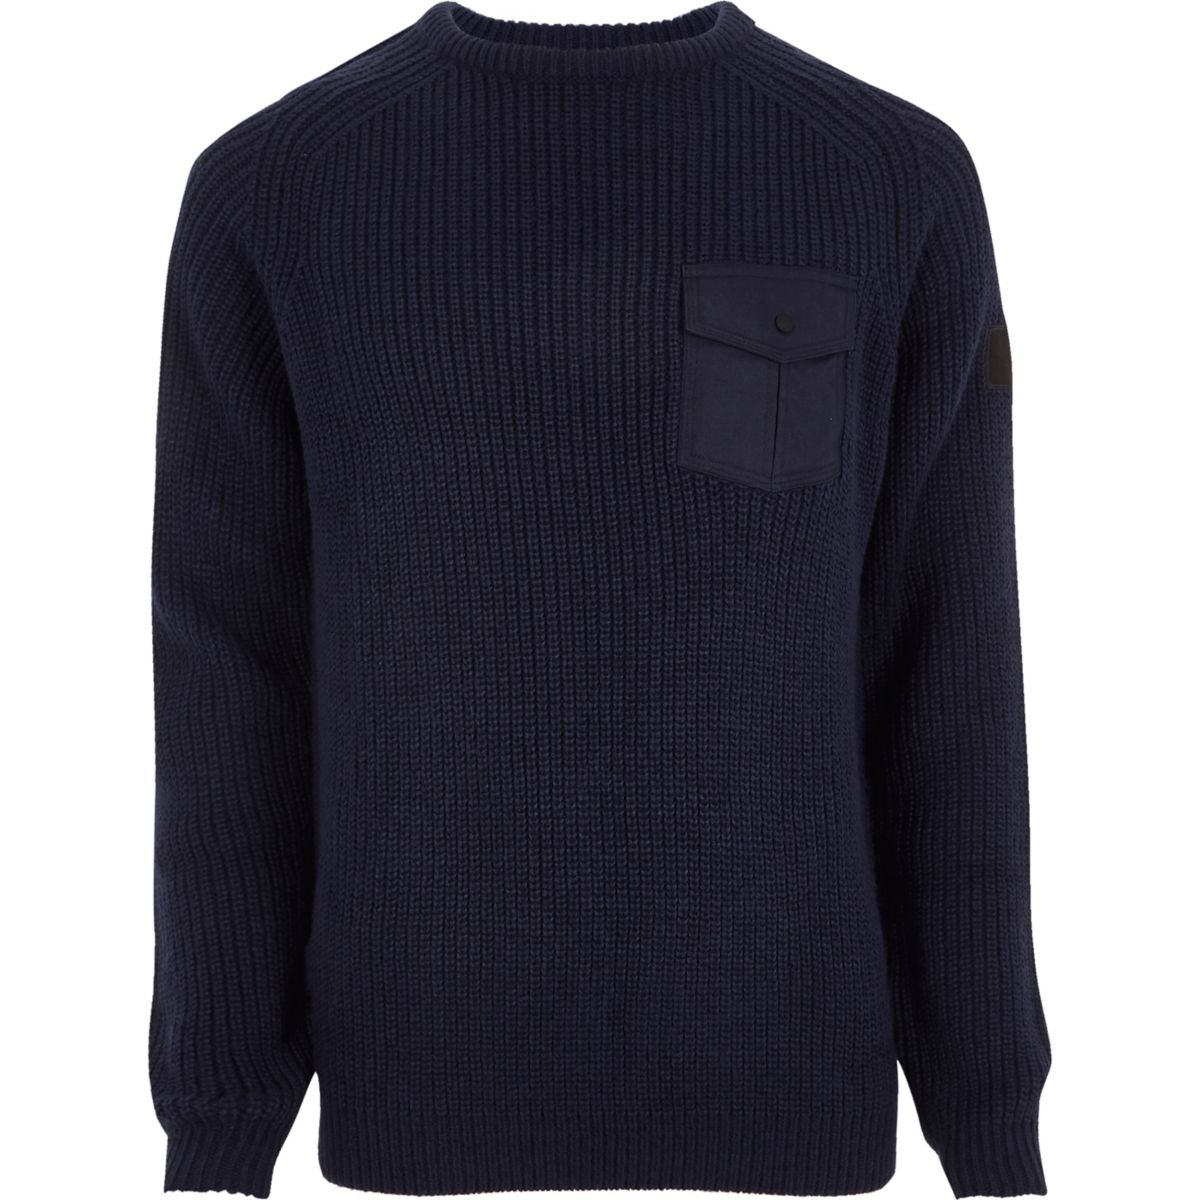 Navy chest patch pocket ribbed knit sweater